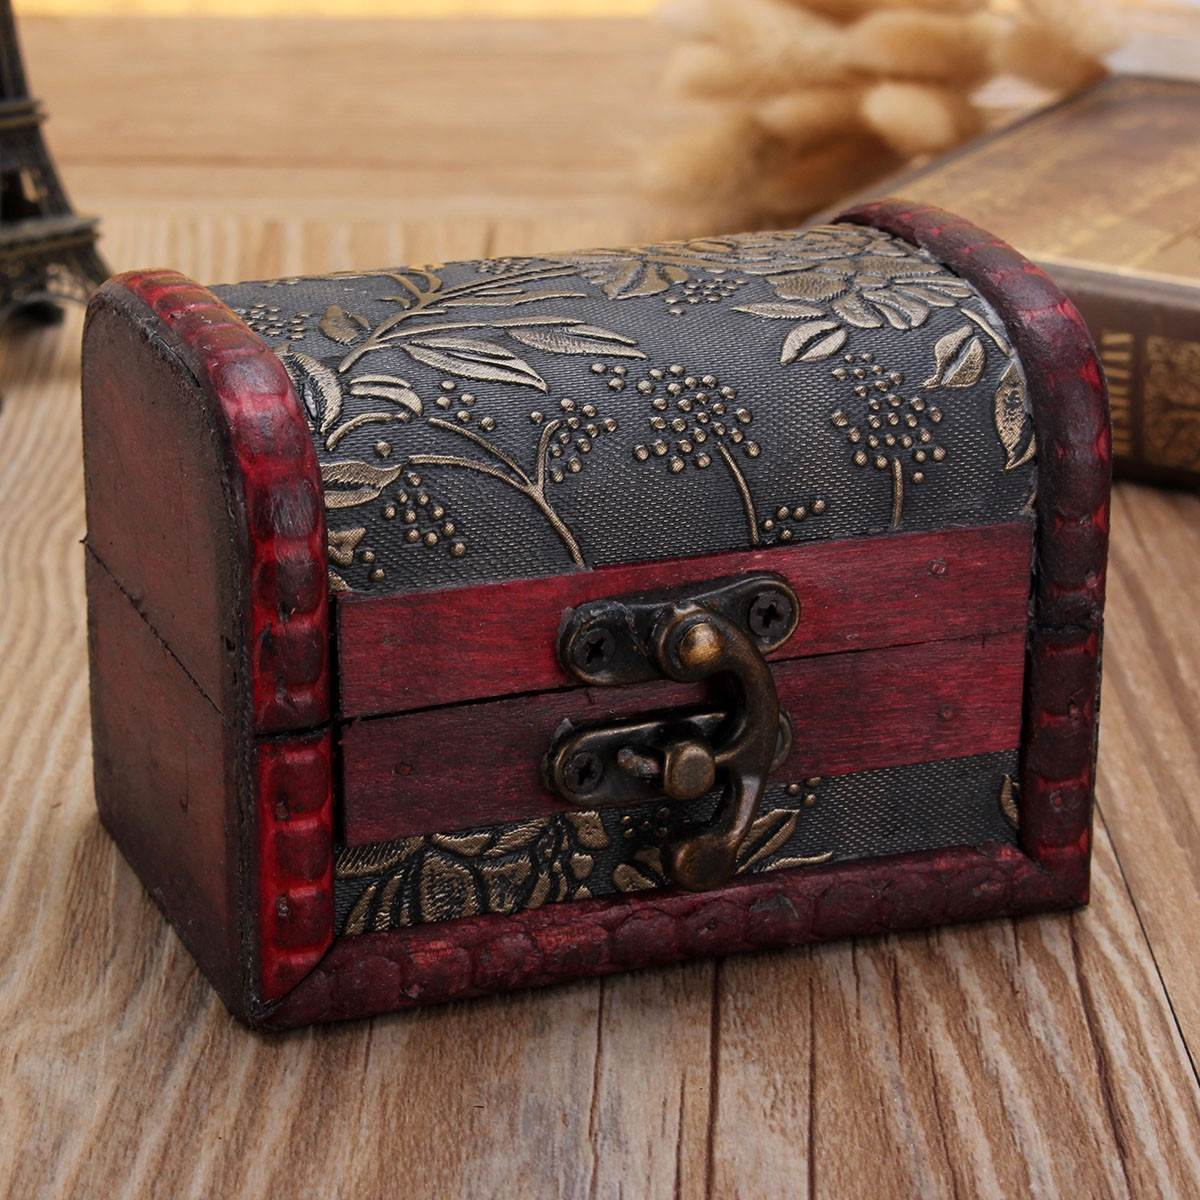 Aliexpress Com Free Shipping Small Handbag Storage Jewelry Decorative Tin Box With Lids Candy Earphone Ring Christmas Gifts Bo From Reliable